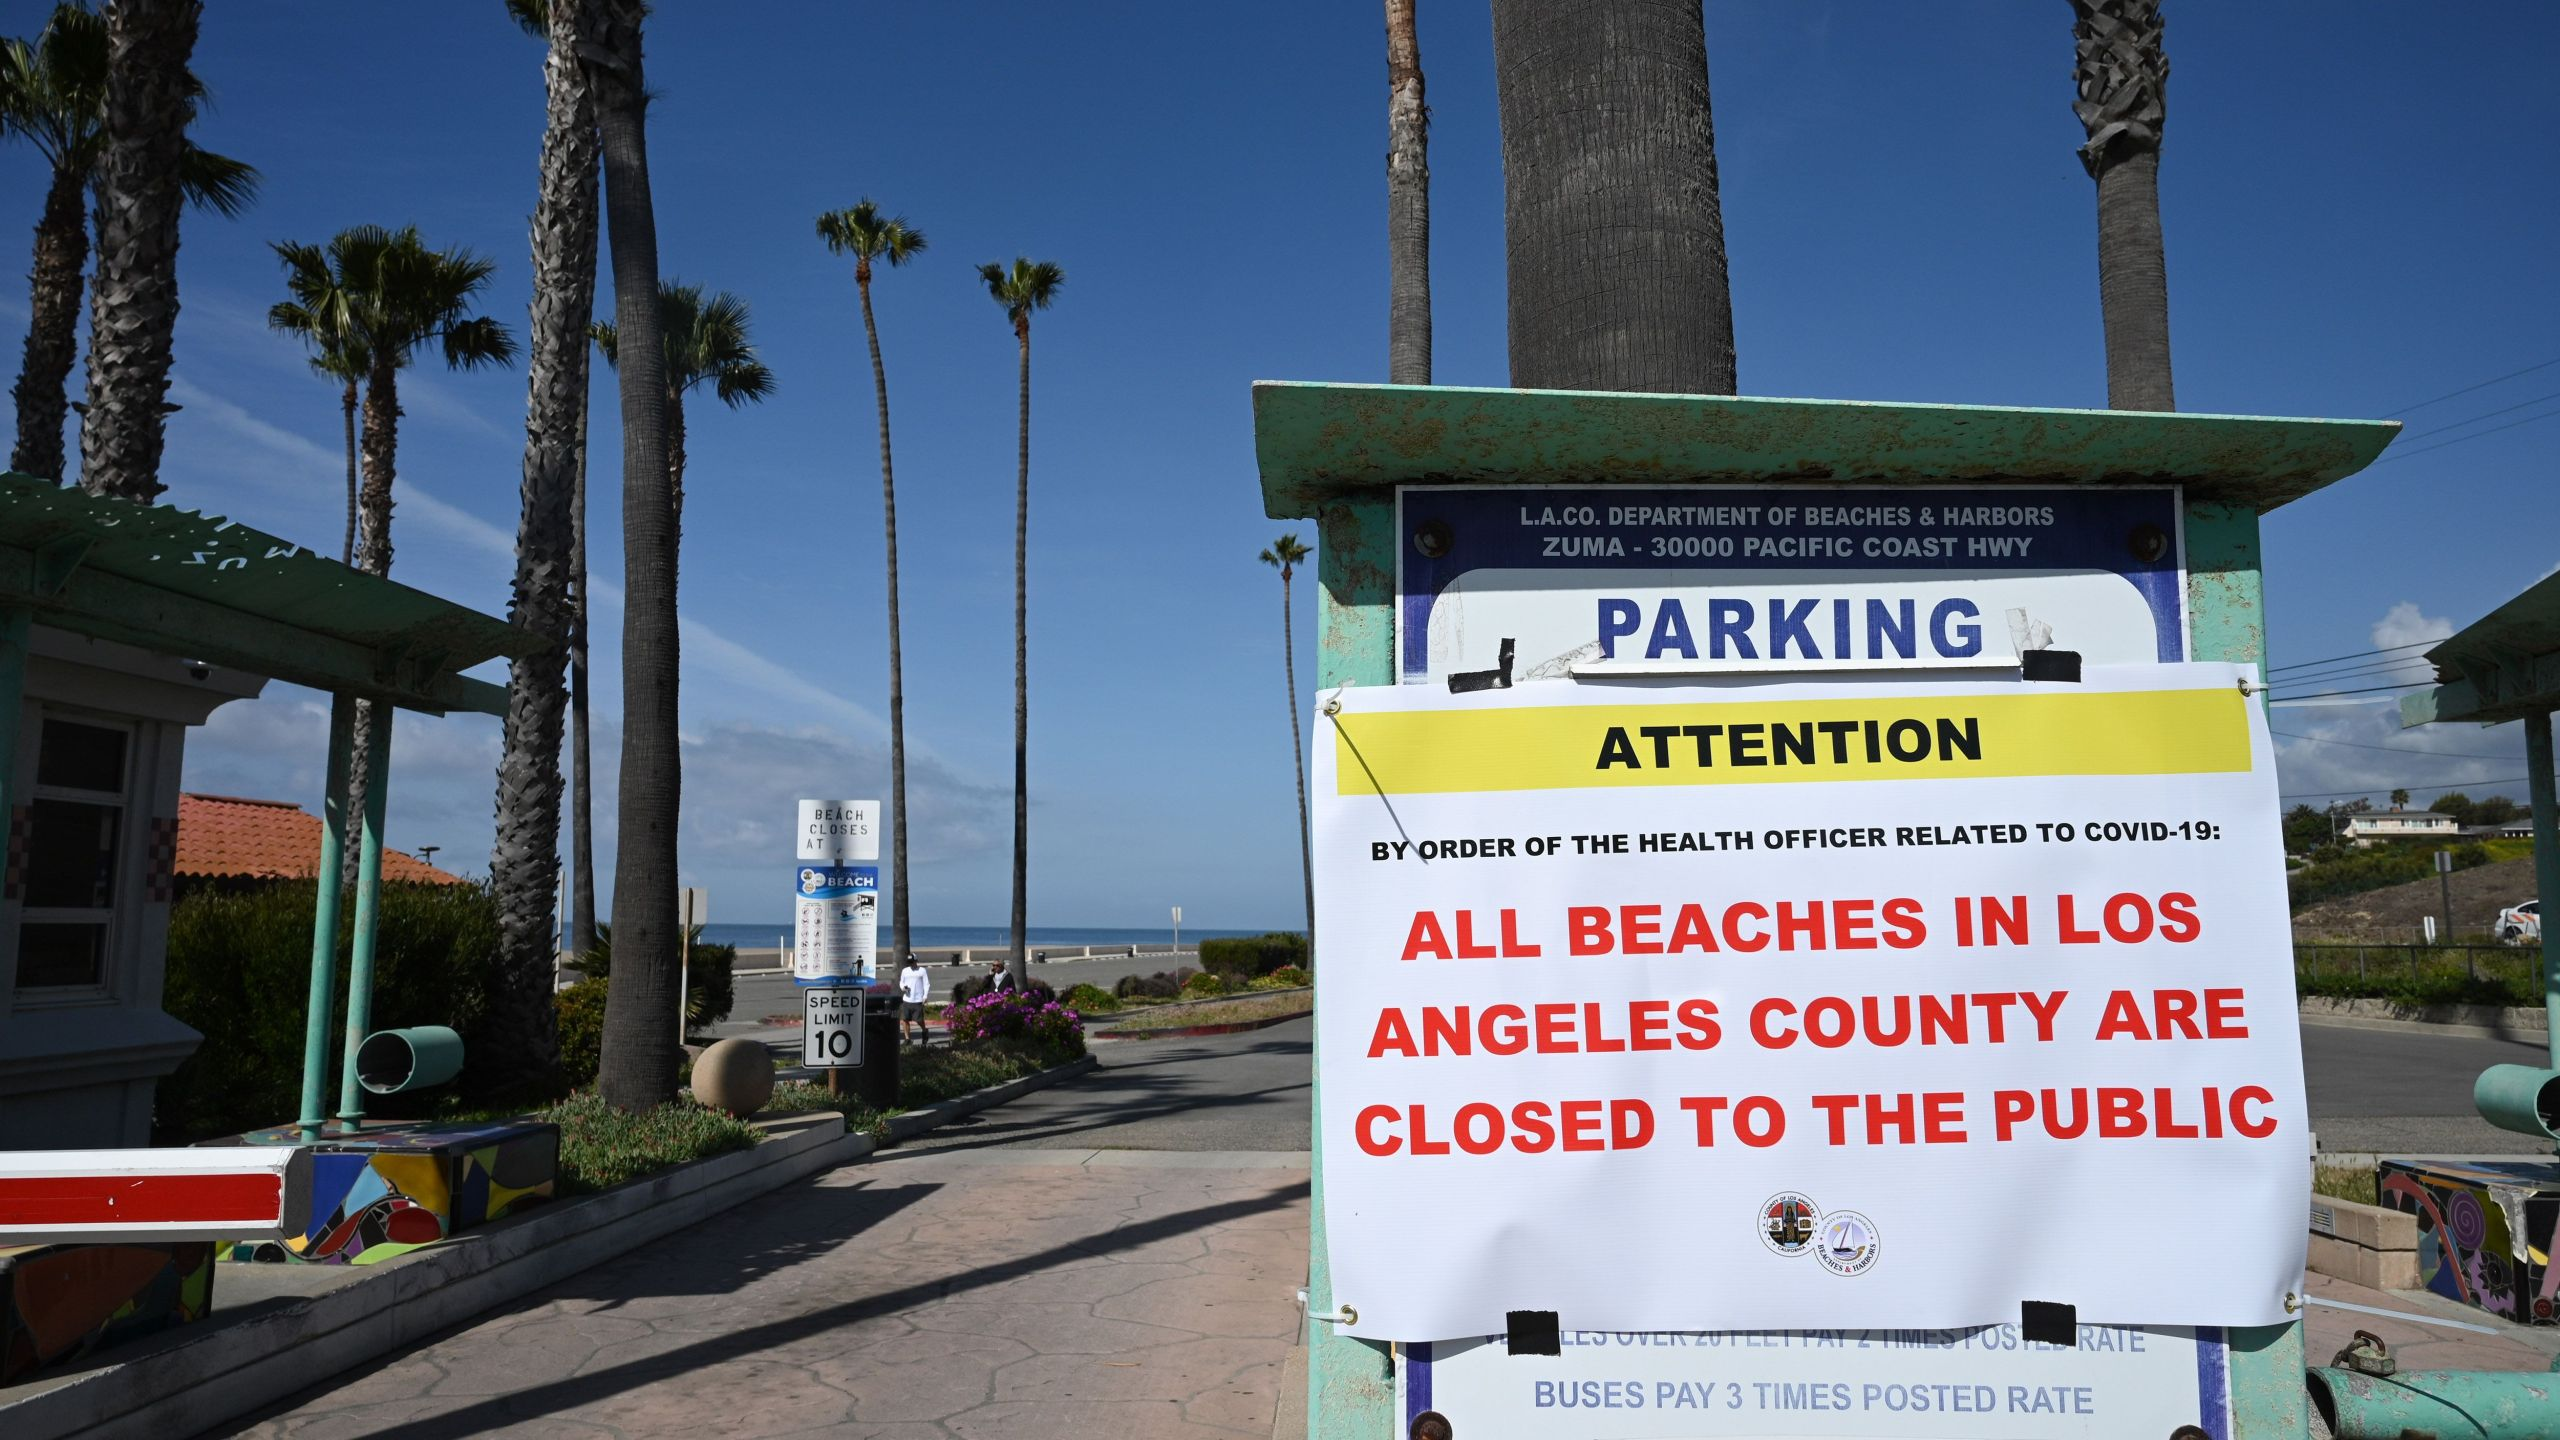 A sign reads that Zuma Beach in Malibu is closed to the public on March 28, 2020, in an effort to stem the growth of COVID-19 cases in Los Angeles County. (ROBYN BECK/AFP via Getty Images)